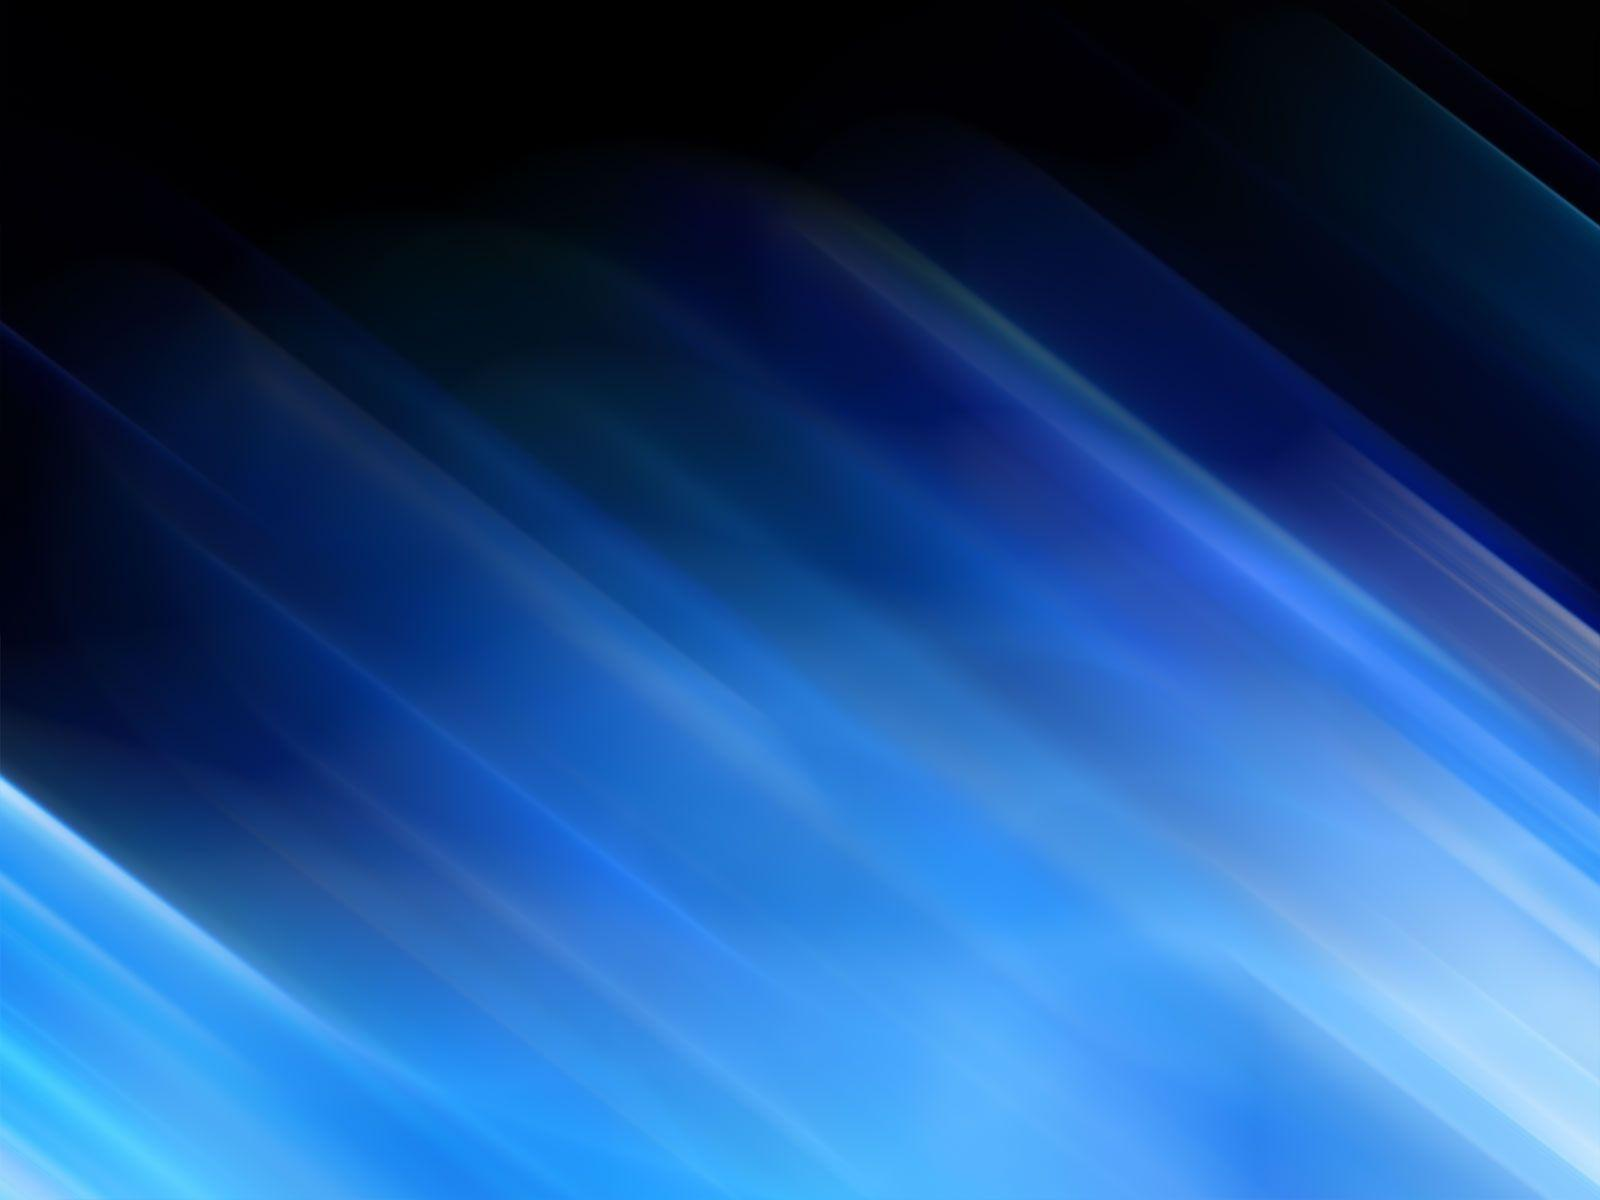 Awesome Blue Backgrounds - Wallpaper Cave